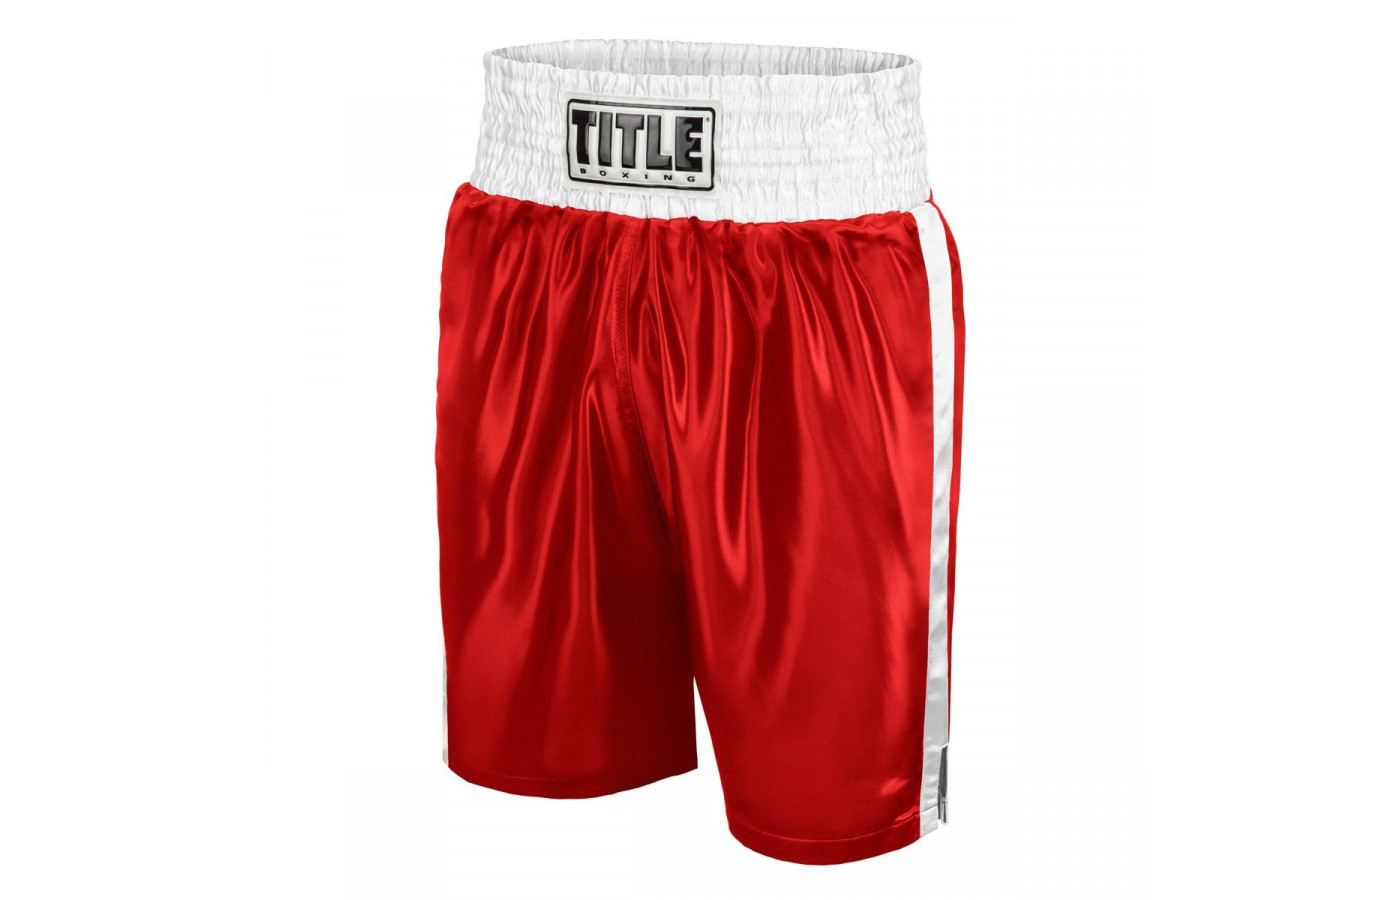 Title trunks red and white